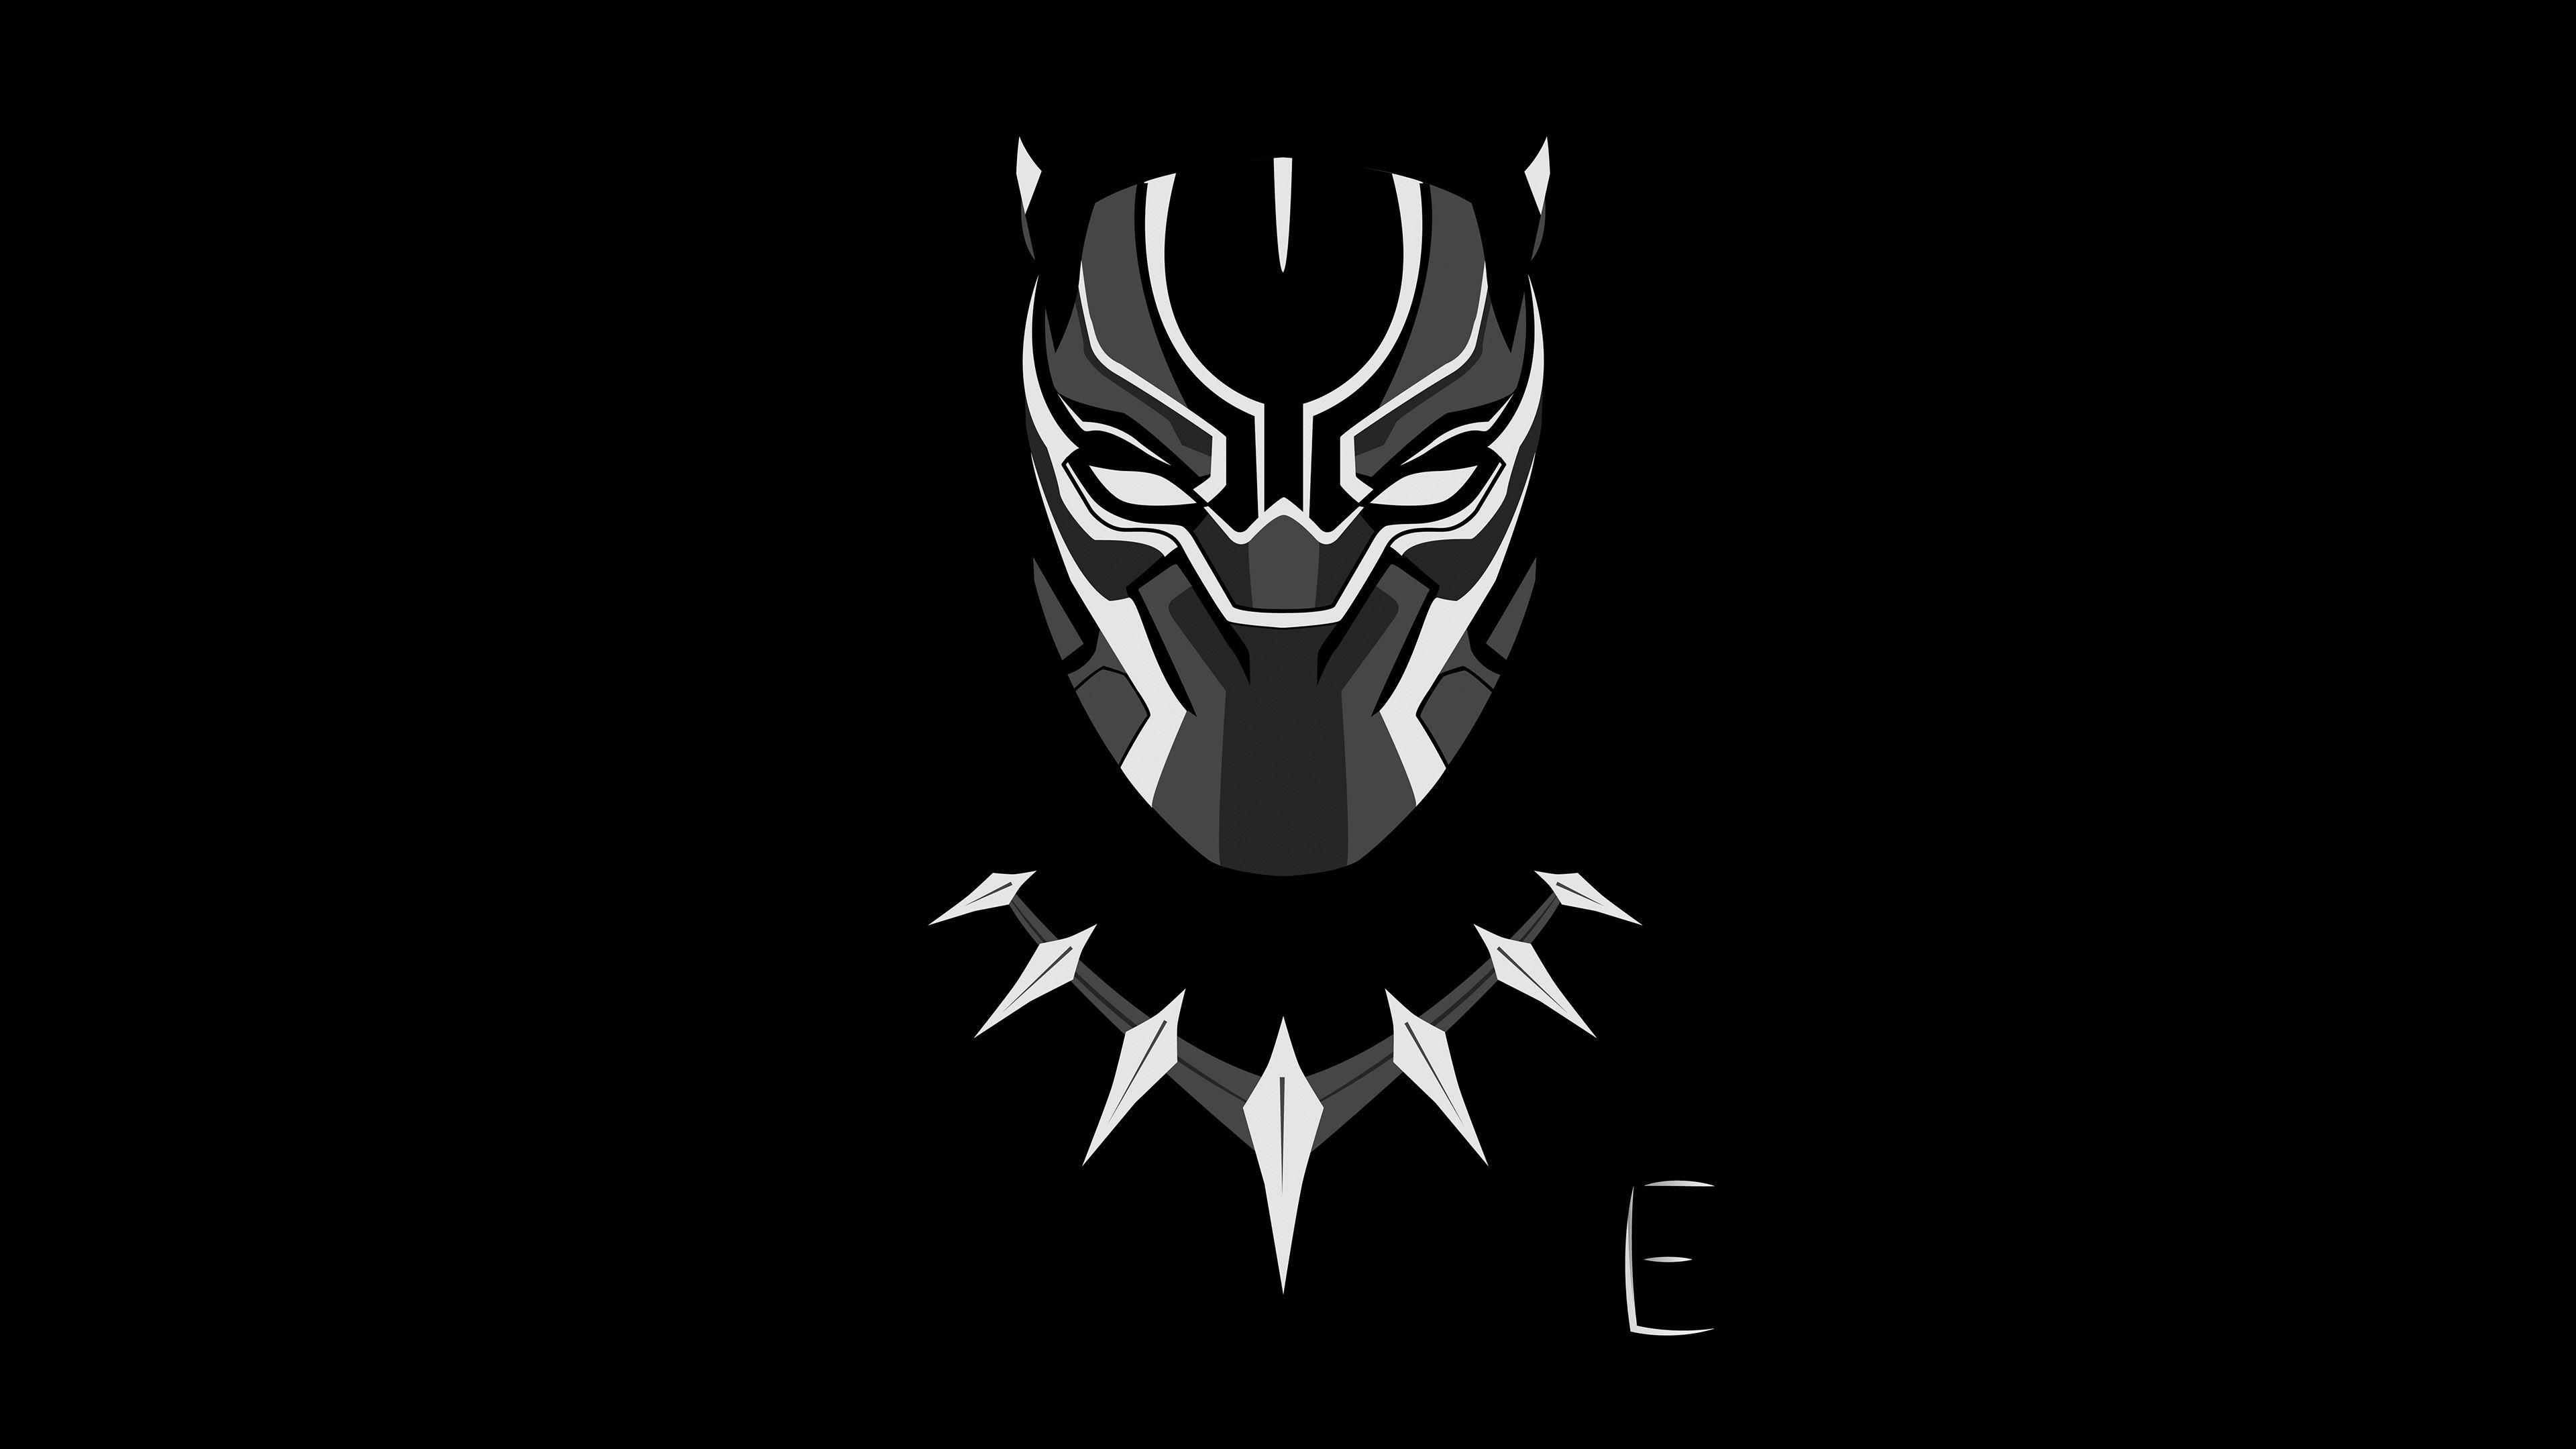 black panther logo wallpapers - wallpaper cave